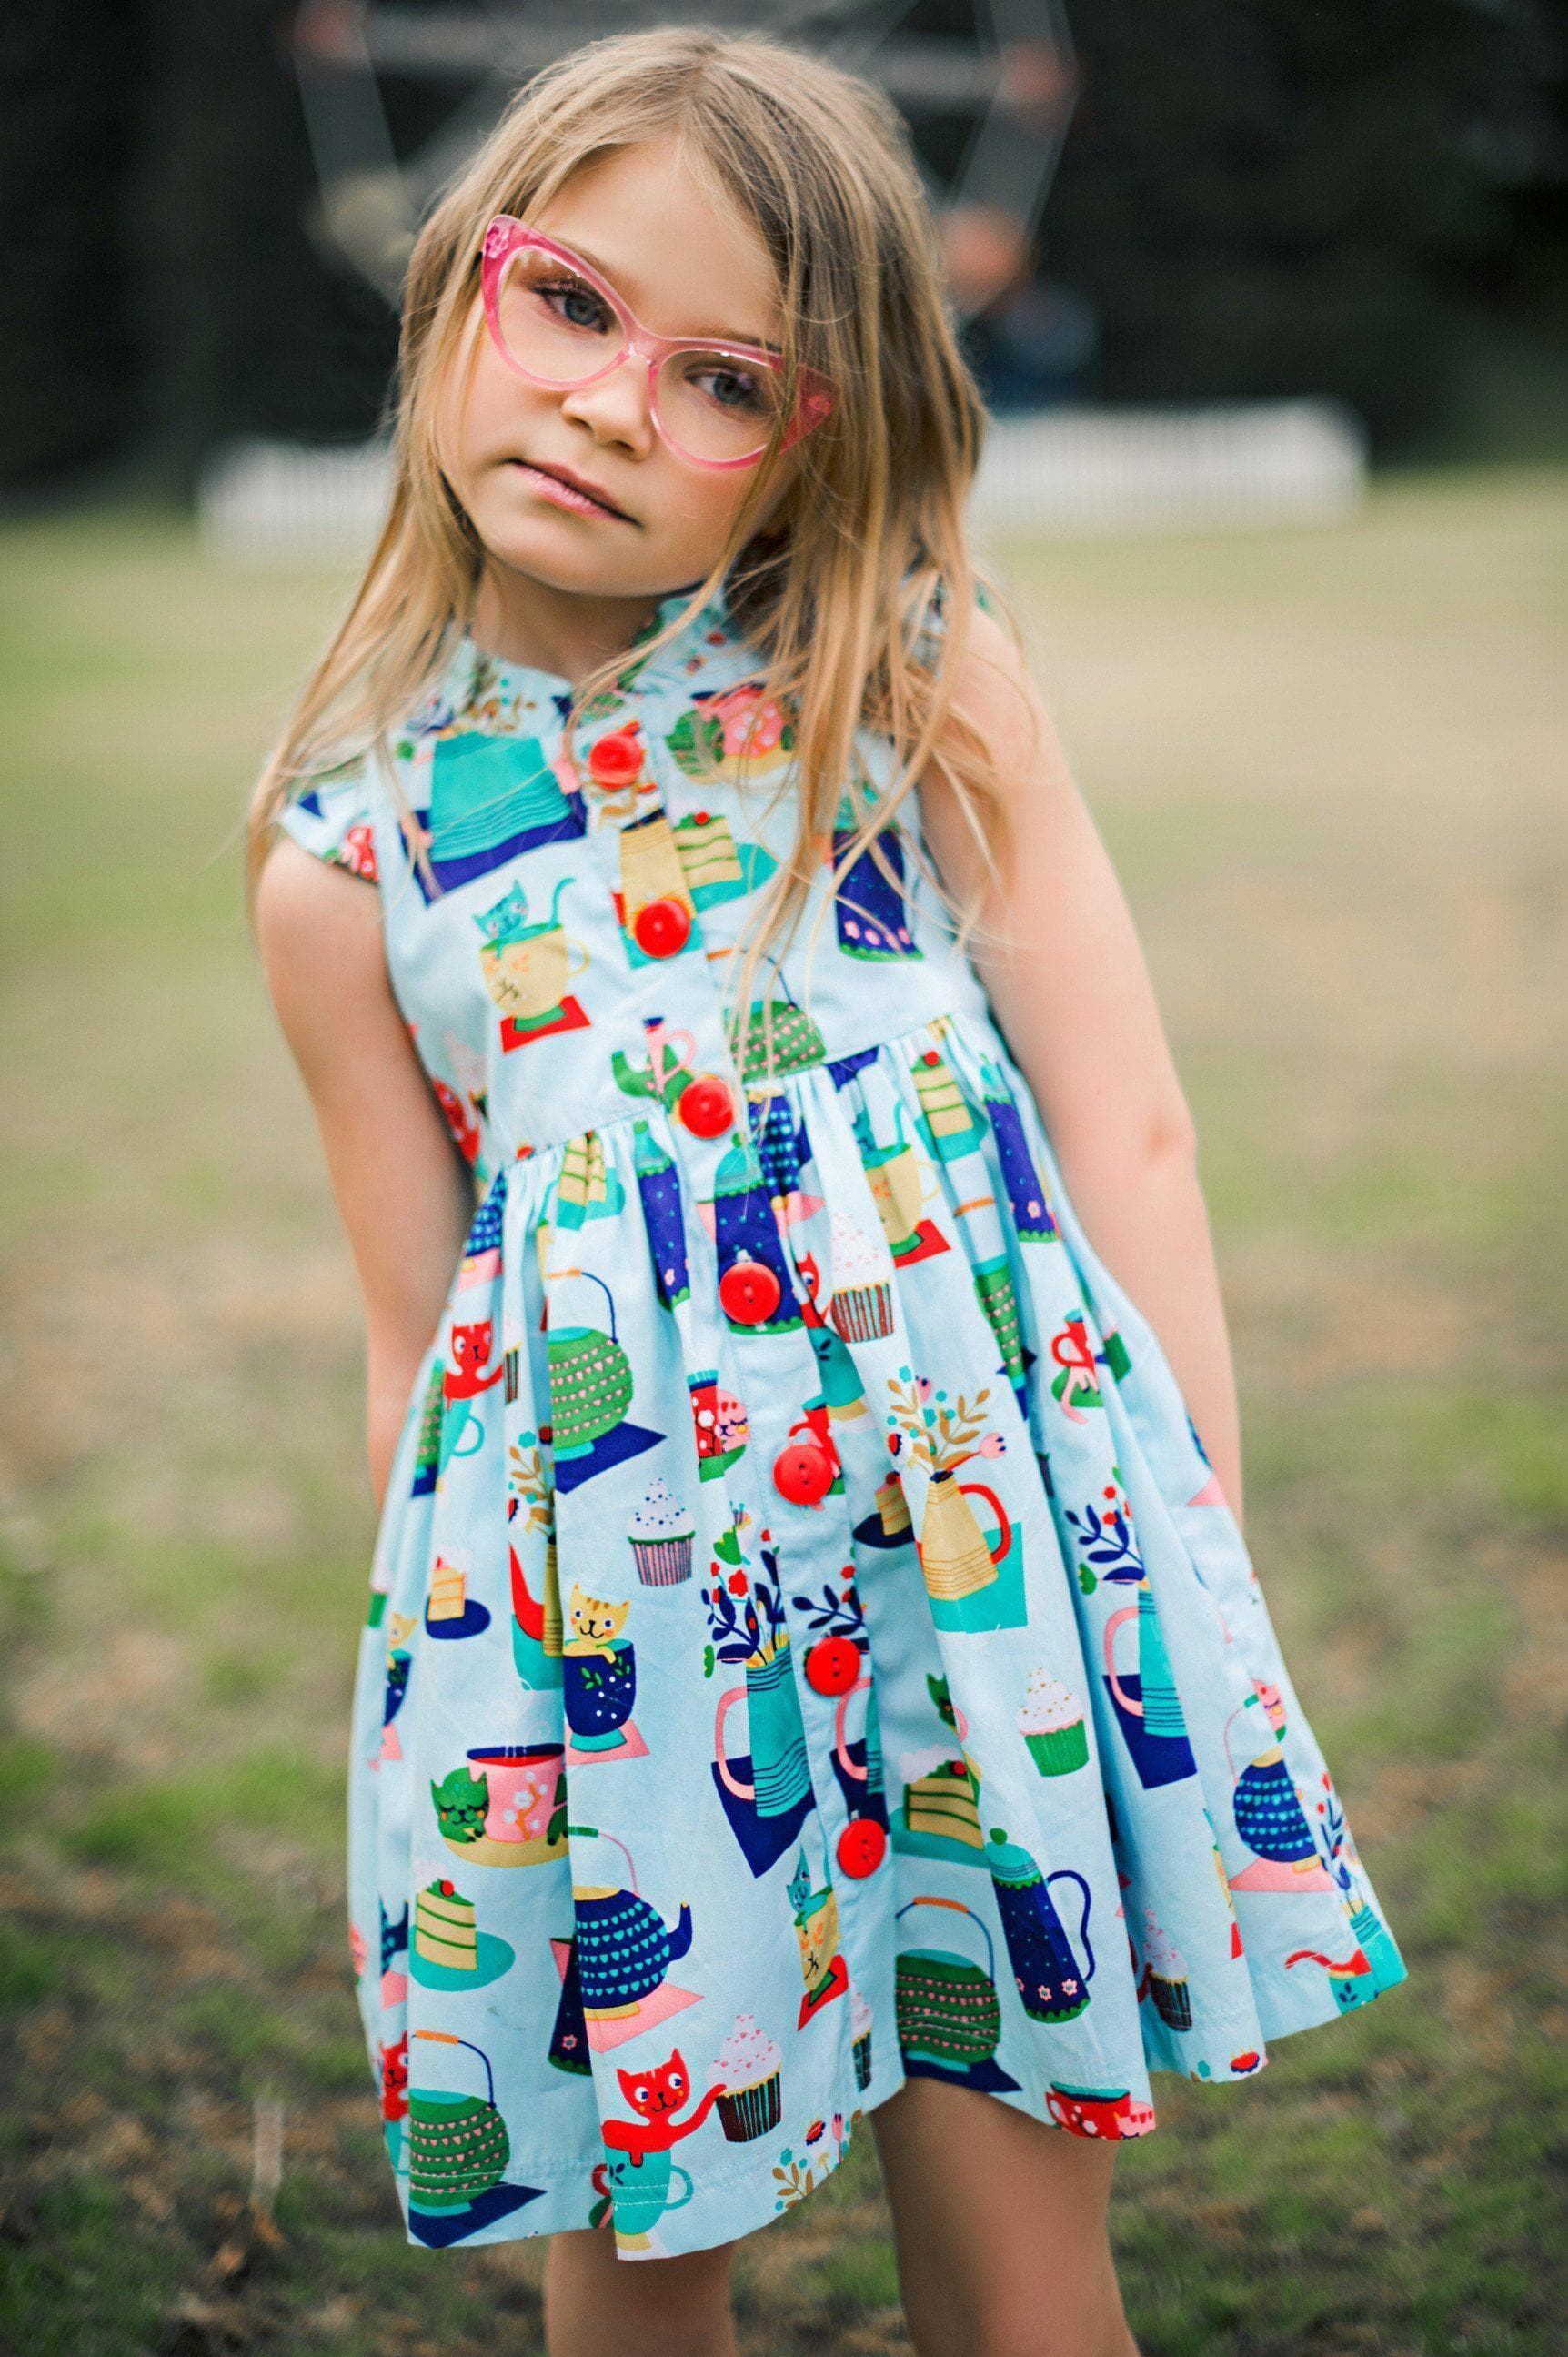 a2e79574a Little Miss Marmalade - Girls Vintage Inspired Clothing